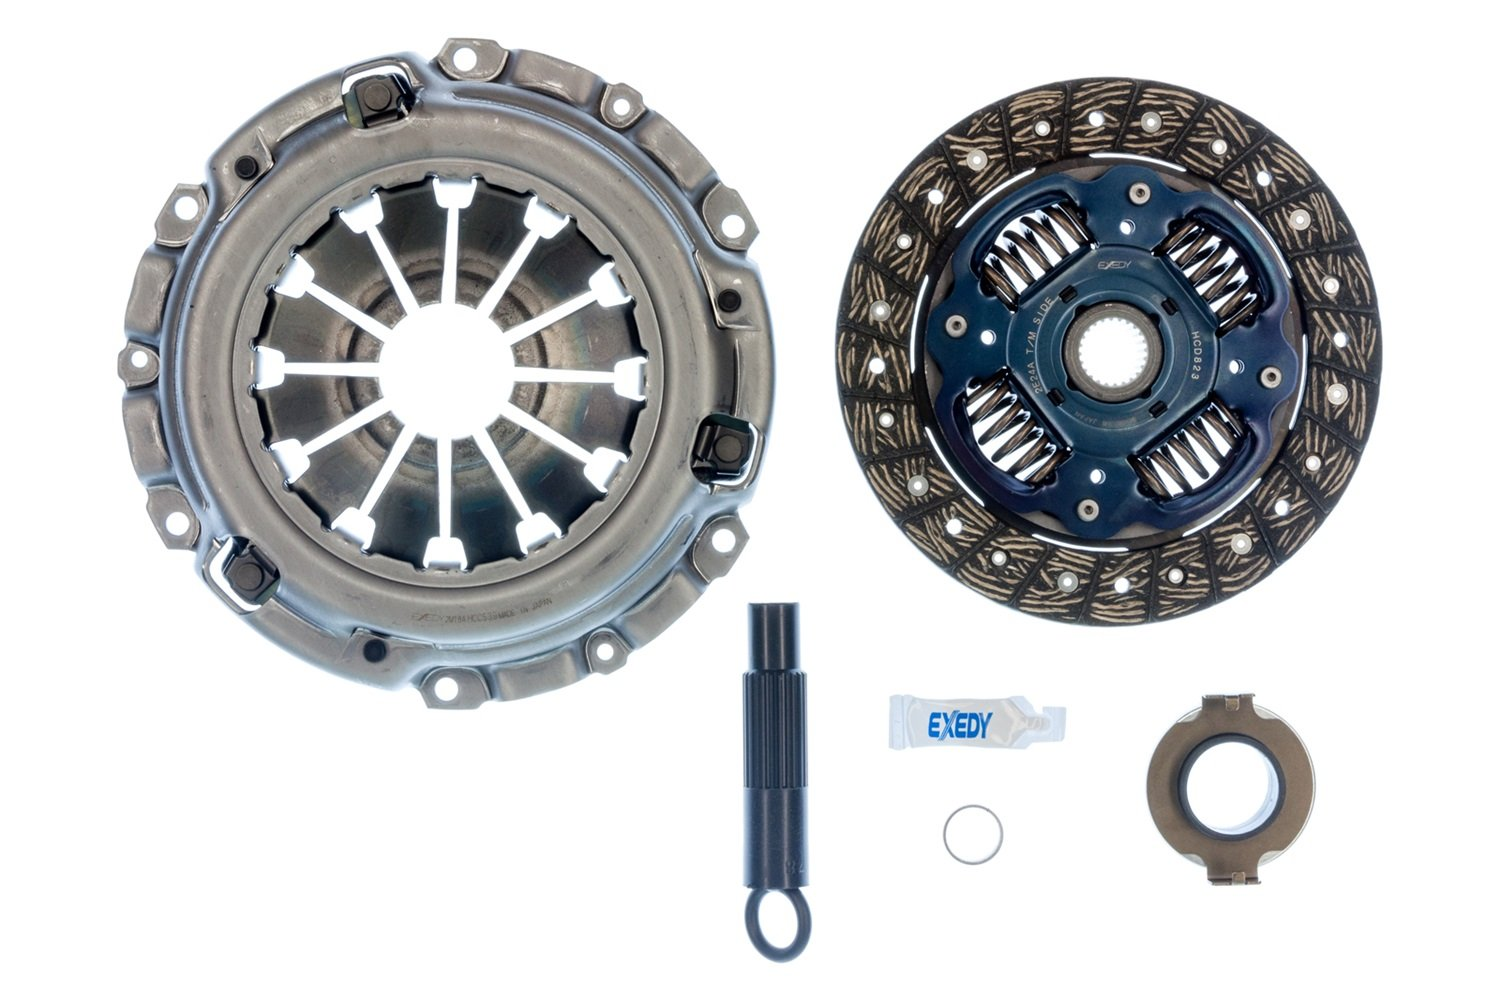 EXEDY KHC10 OEM Replacement Clutch Kit For Acura RSX Type S 2002-2006 & Honda Civic SI 2006-2008 Only by Exedy